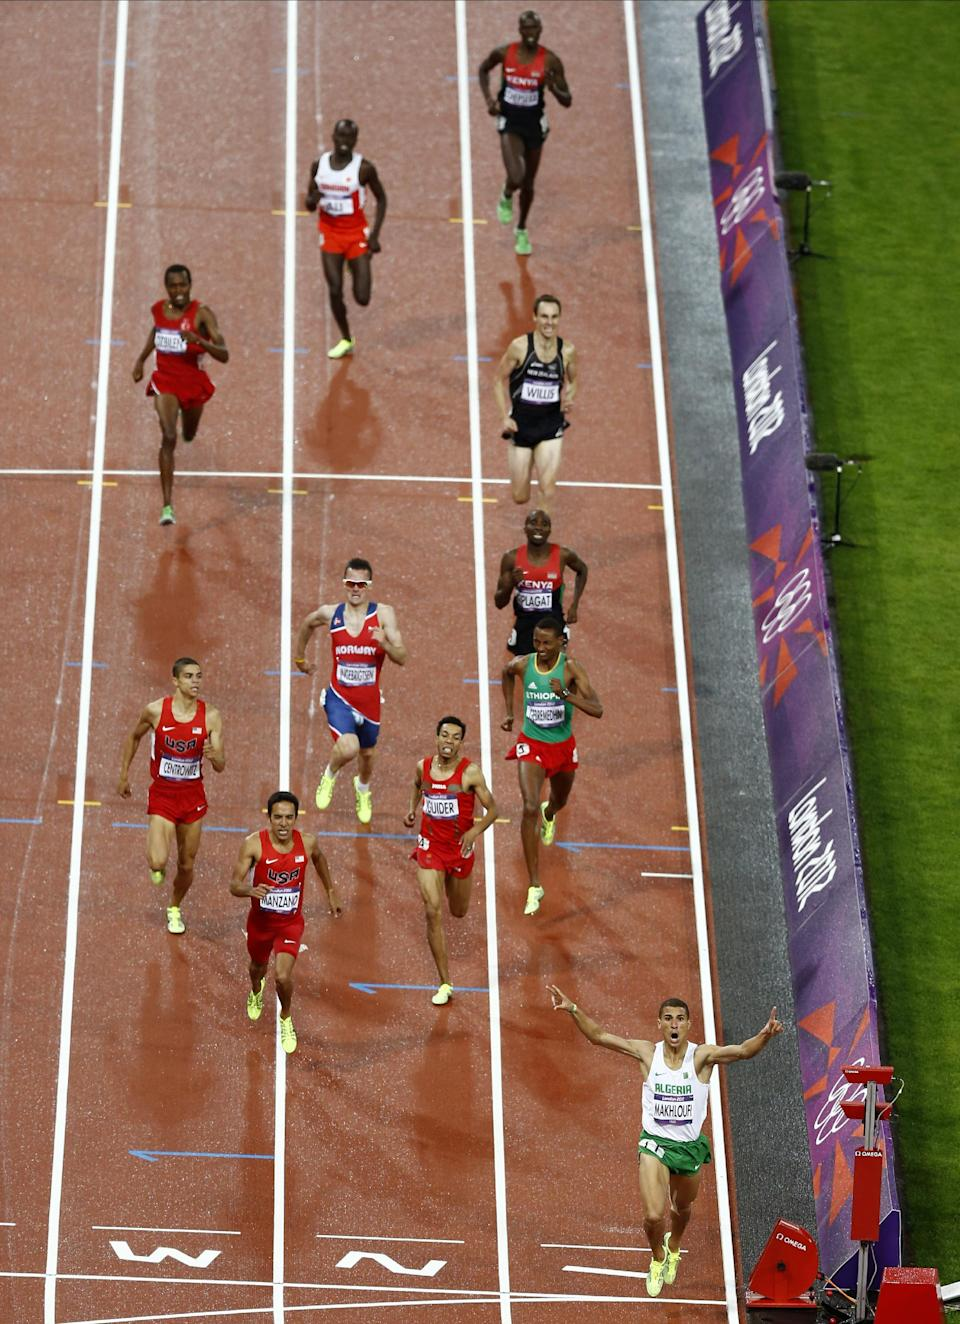 Algeria's Taoufik Makhloufi celebrates as he crosses the finish line to win the men's 1500-meters final during the athletics in the Olympic Stadium at the 2012 Summer Olympics, London, Tuesday, Aug. 7, 2012. (AP Photo/Daniel Ochoa De Olza)